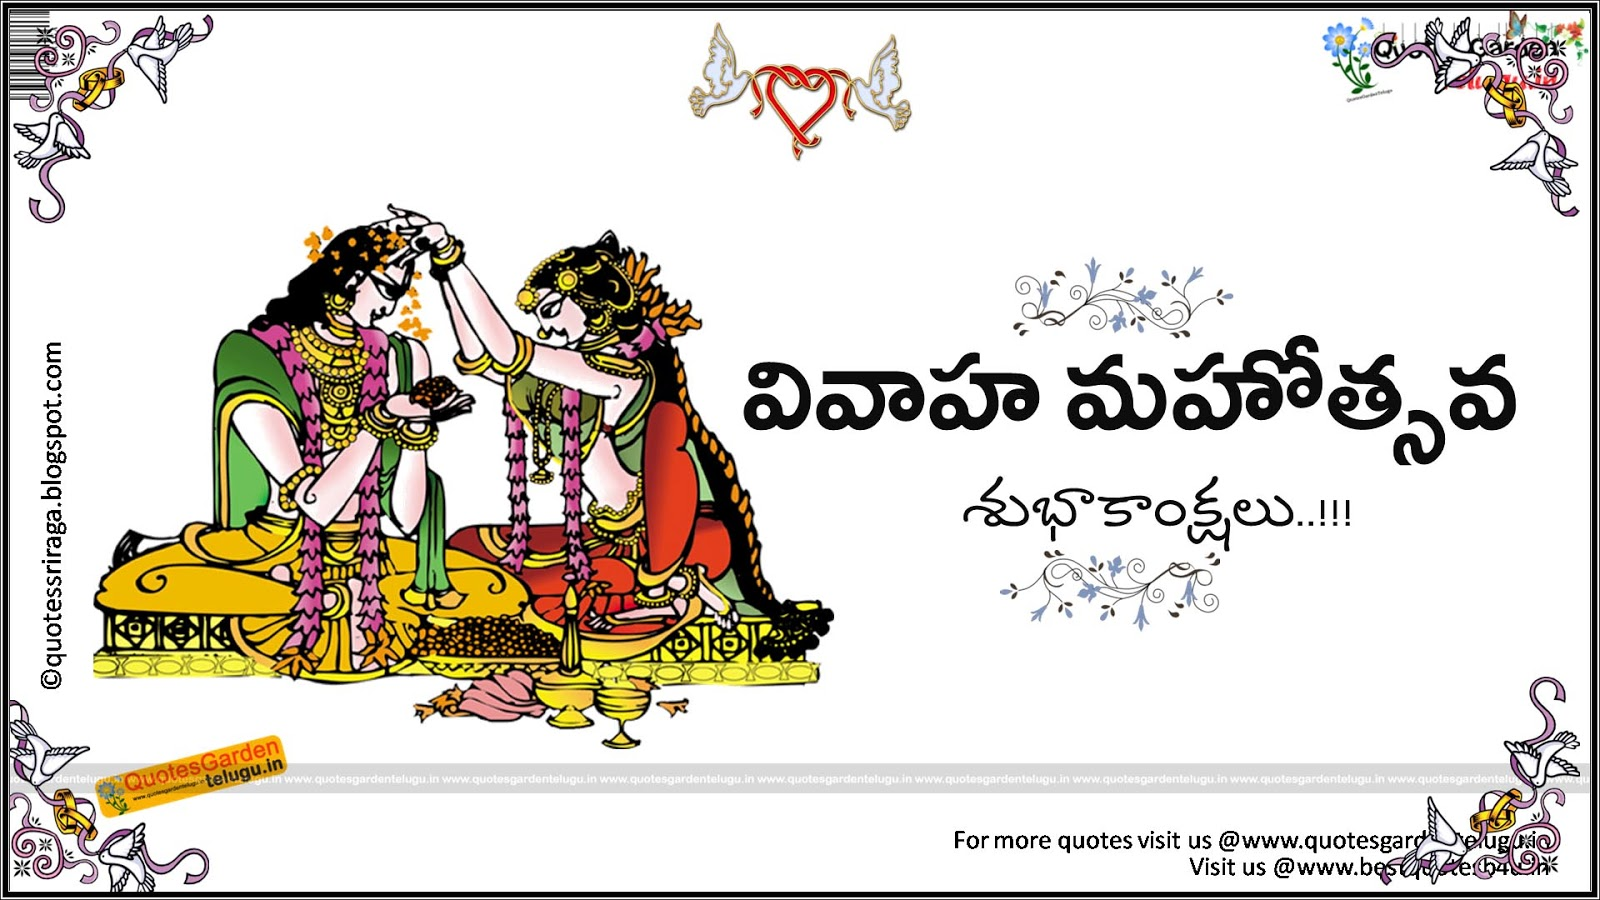 Beautiful Quotes With Wallpapers In Hindi Marriage Day Greetings In Telugu Quotes Garden Telugu